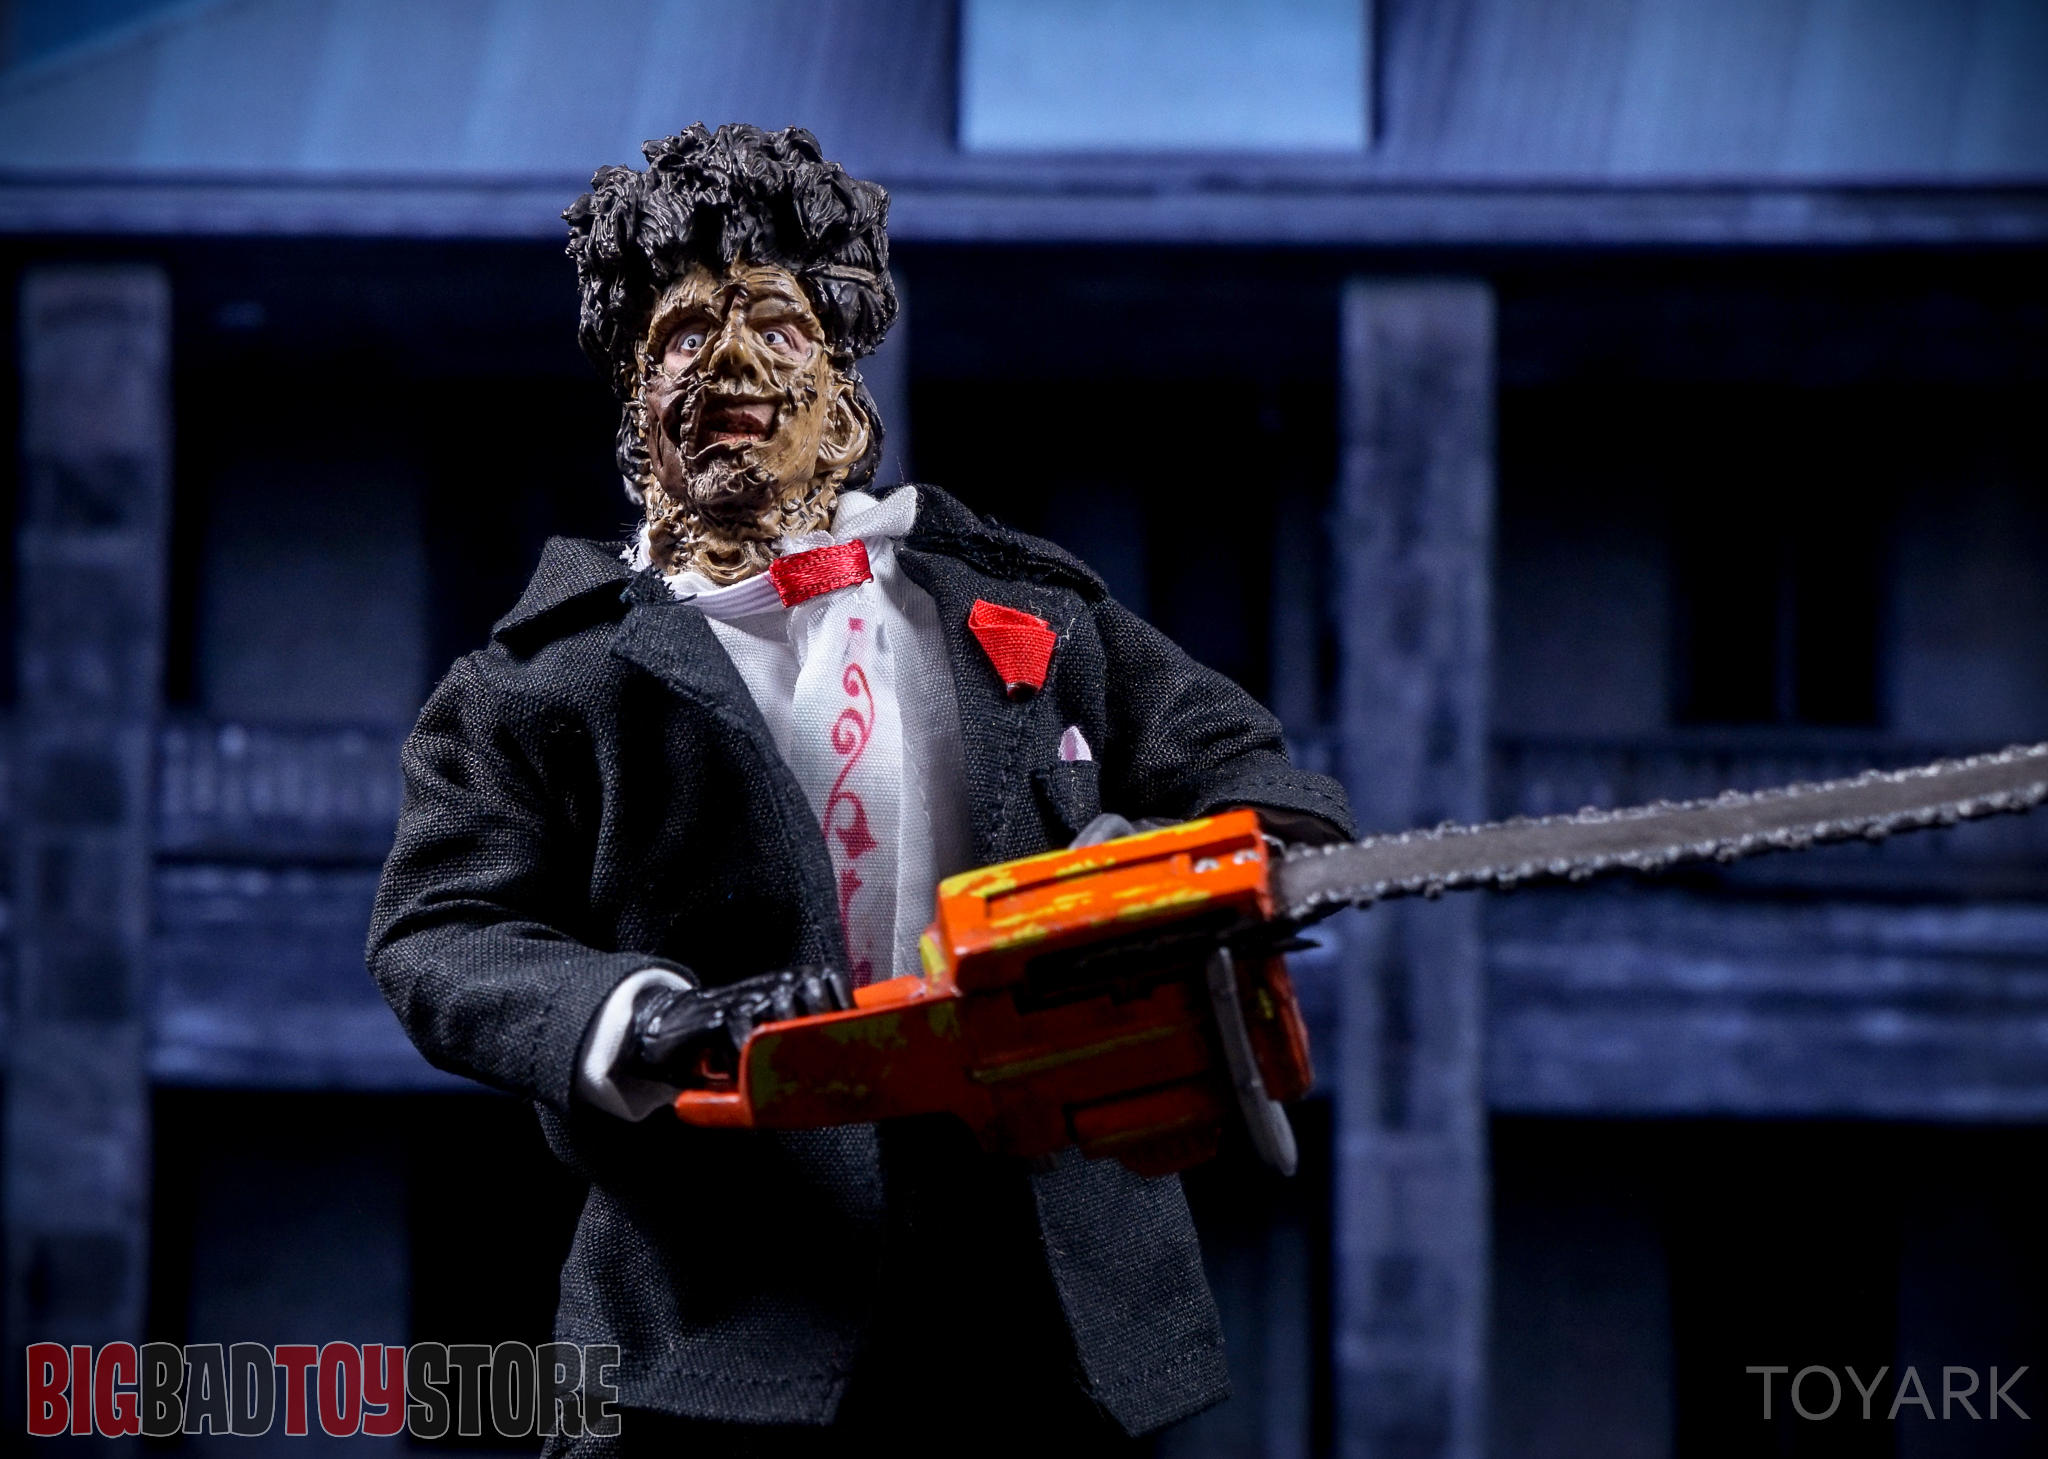 http://news.toyark.com/wp-content/uploads/sites/4/2016/07/NECA-TCM2-Leatherface-037.jpg